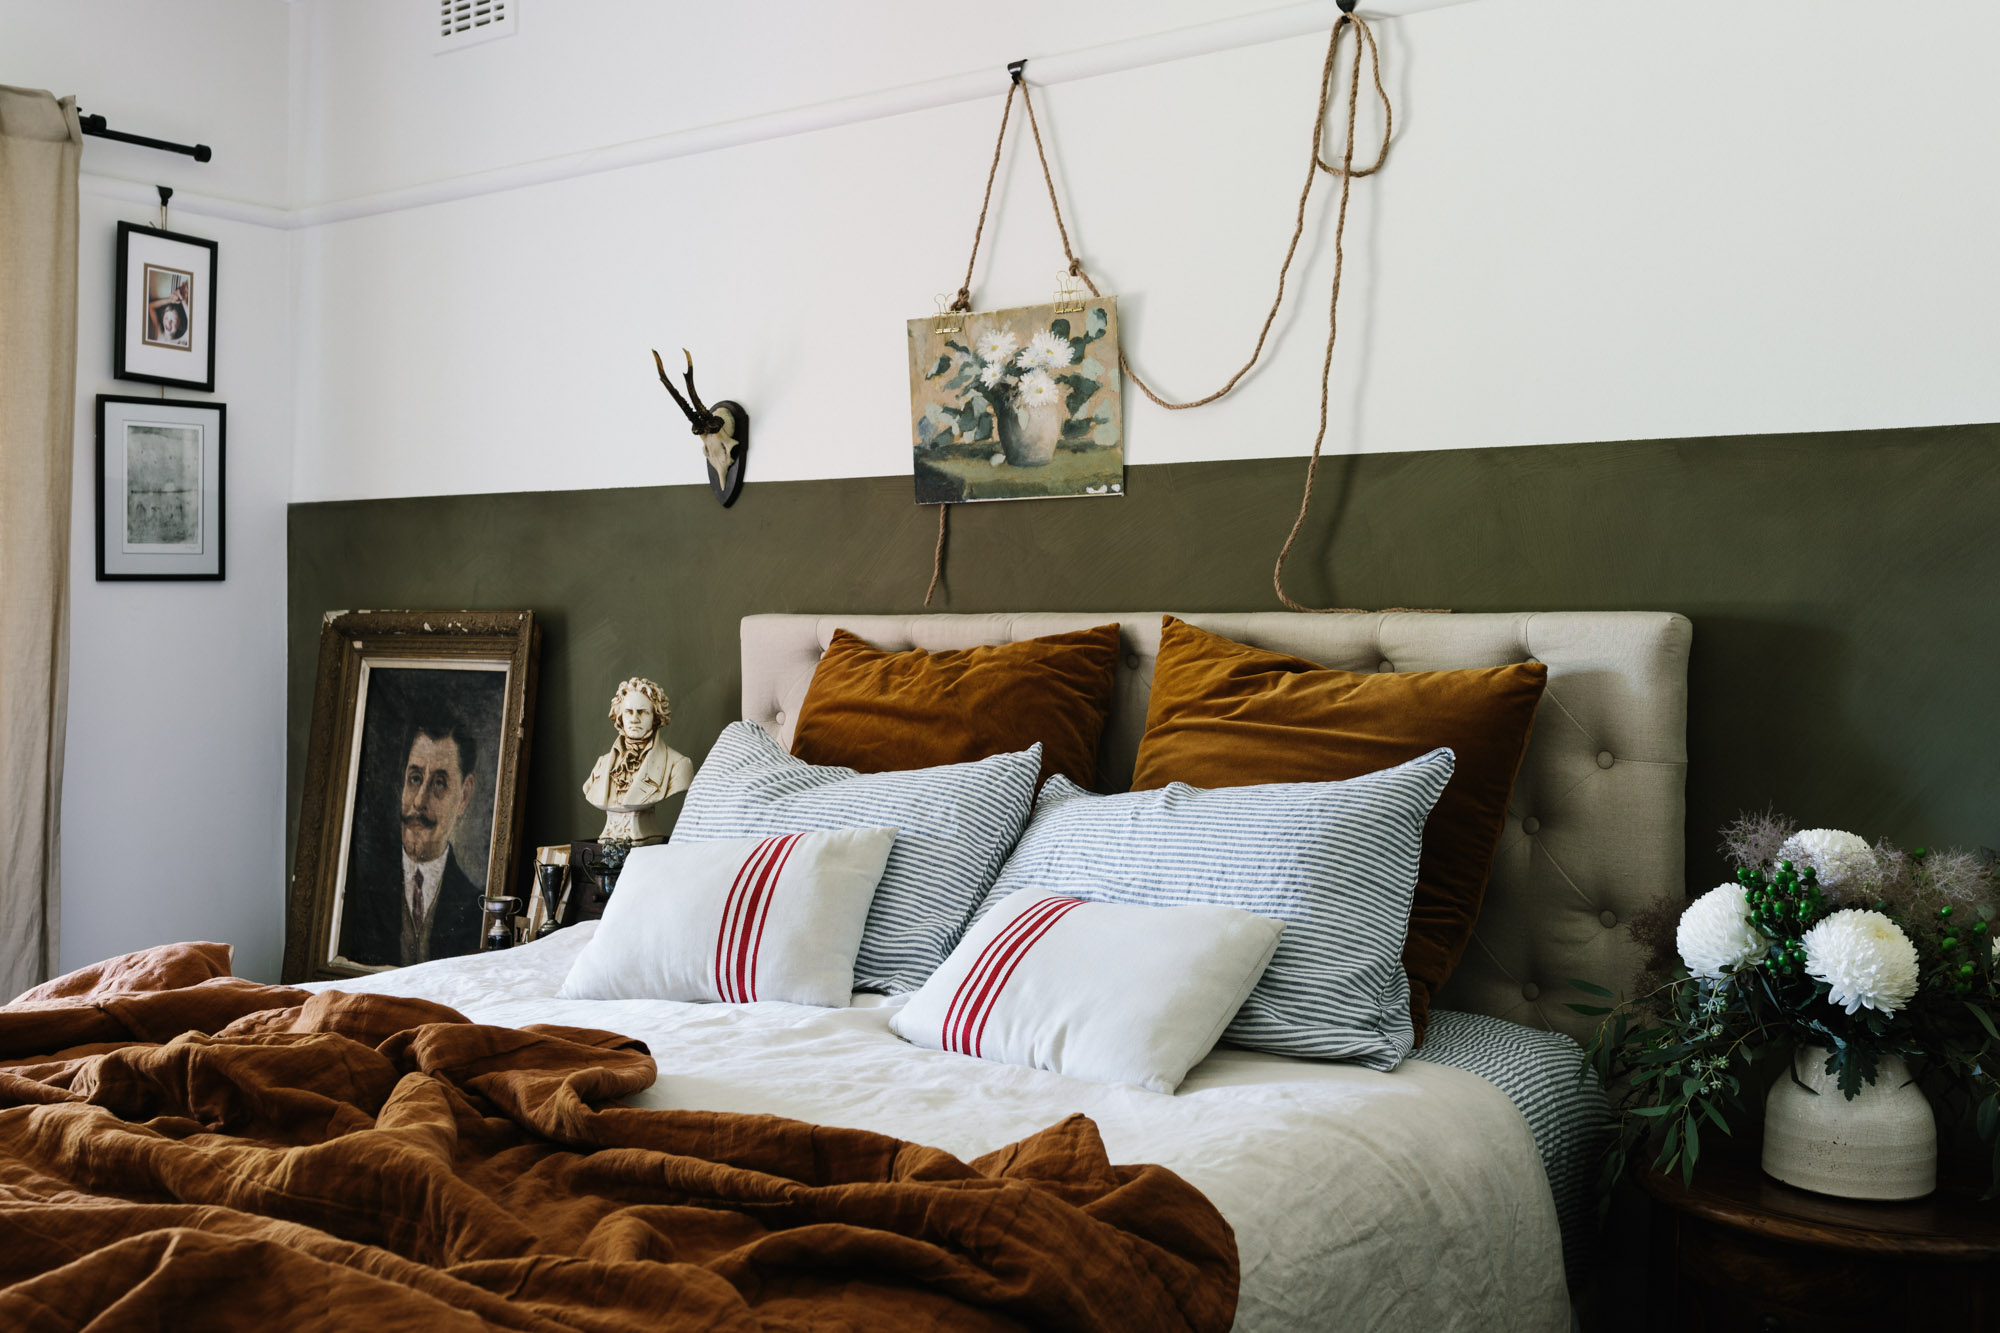 Headboard idea: layered headboard paint + tufted headboard